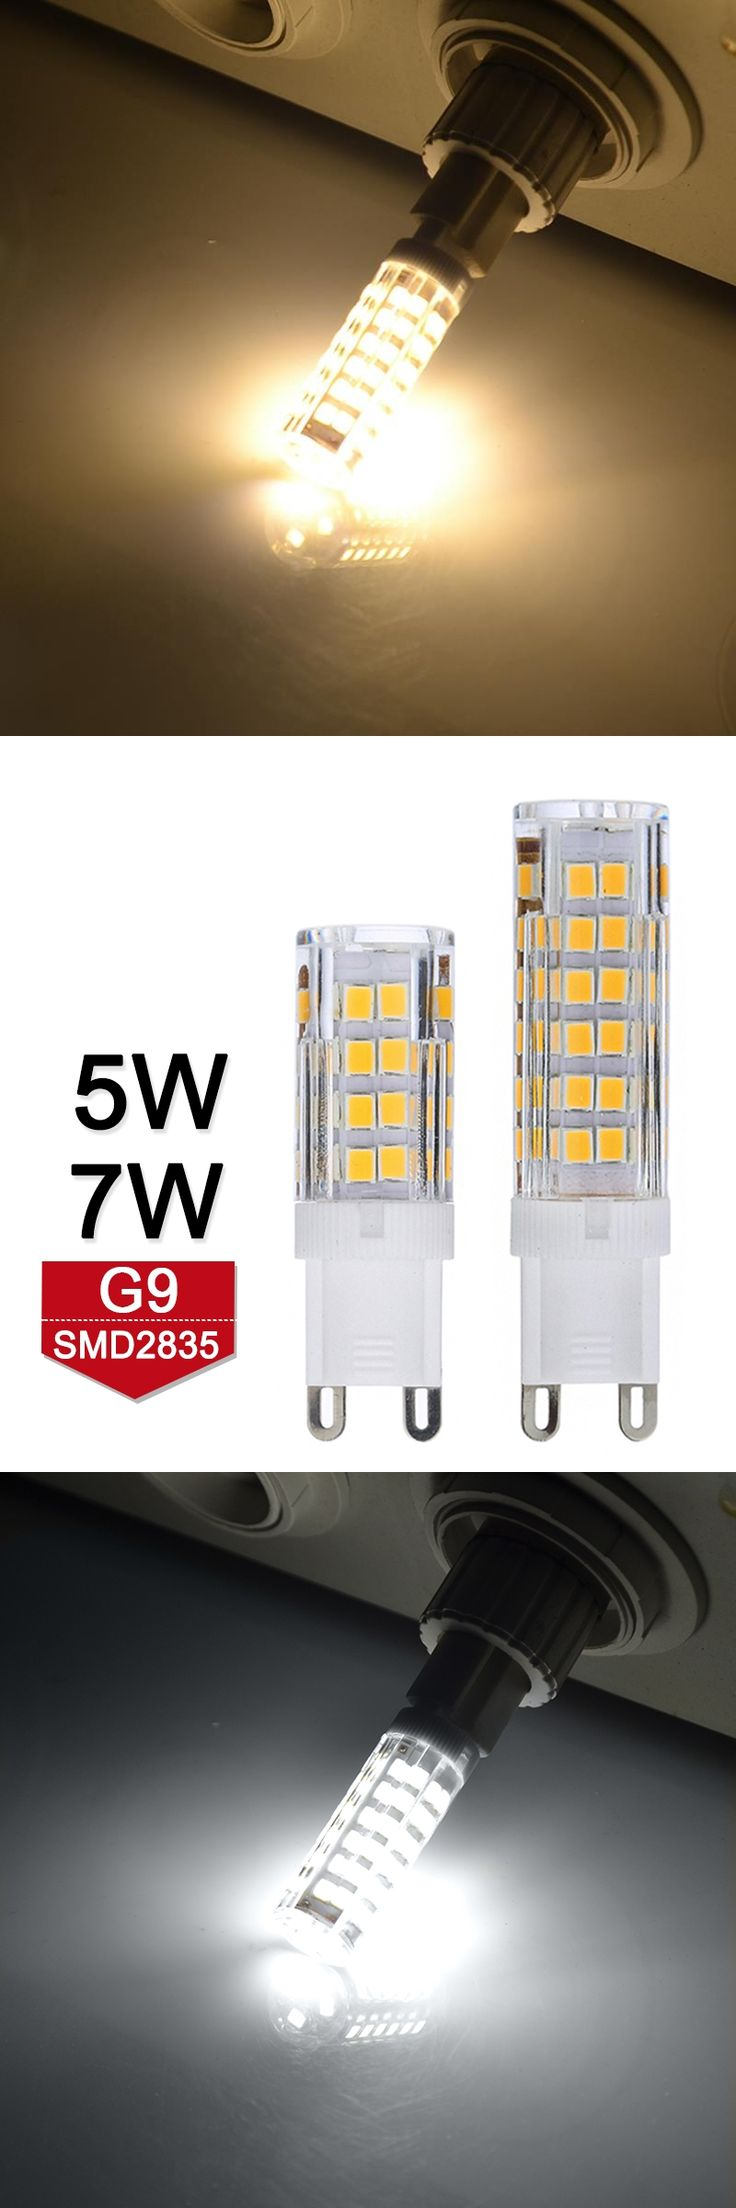 High Quality Mini G9 LED Lamp 5W 7W 220V LED Bulb SMD2835 Bombillas LED G9 Light Crystal Chandelier Replace Halogen Lamps